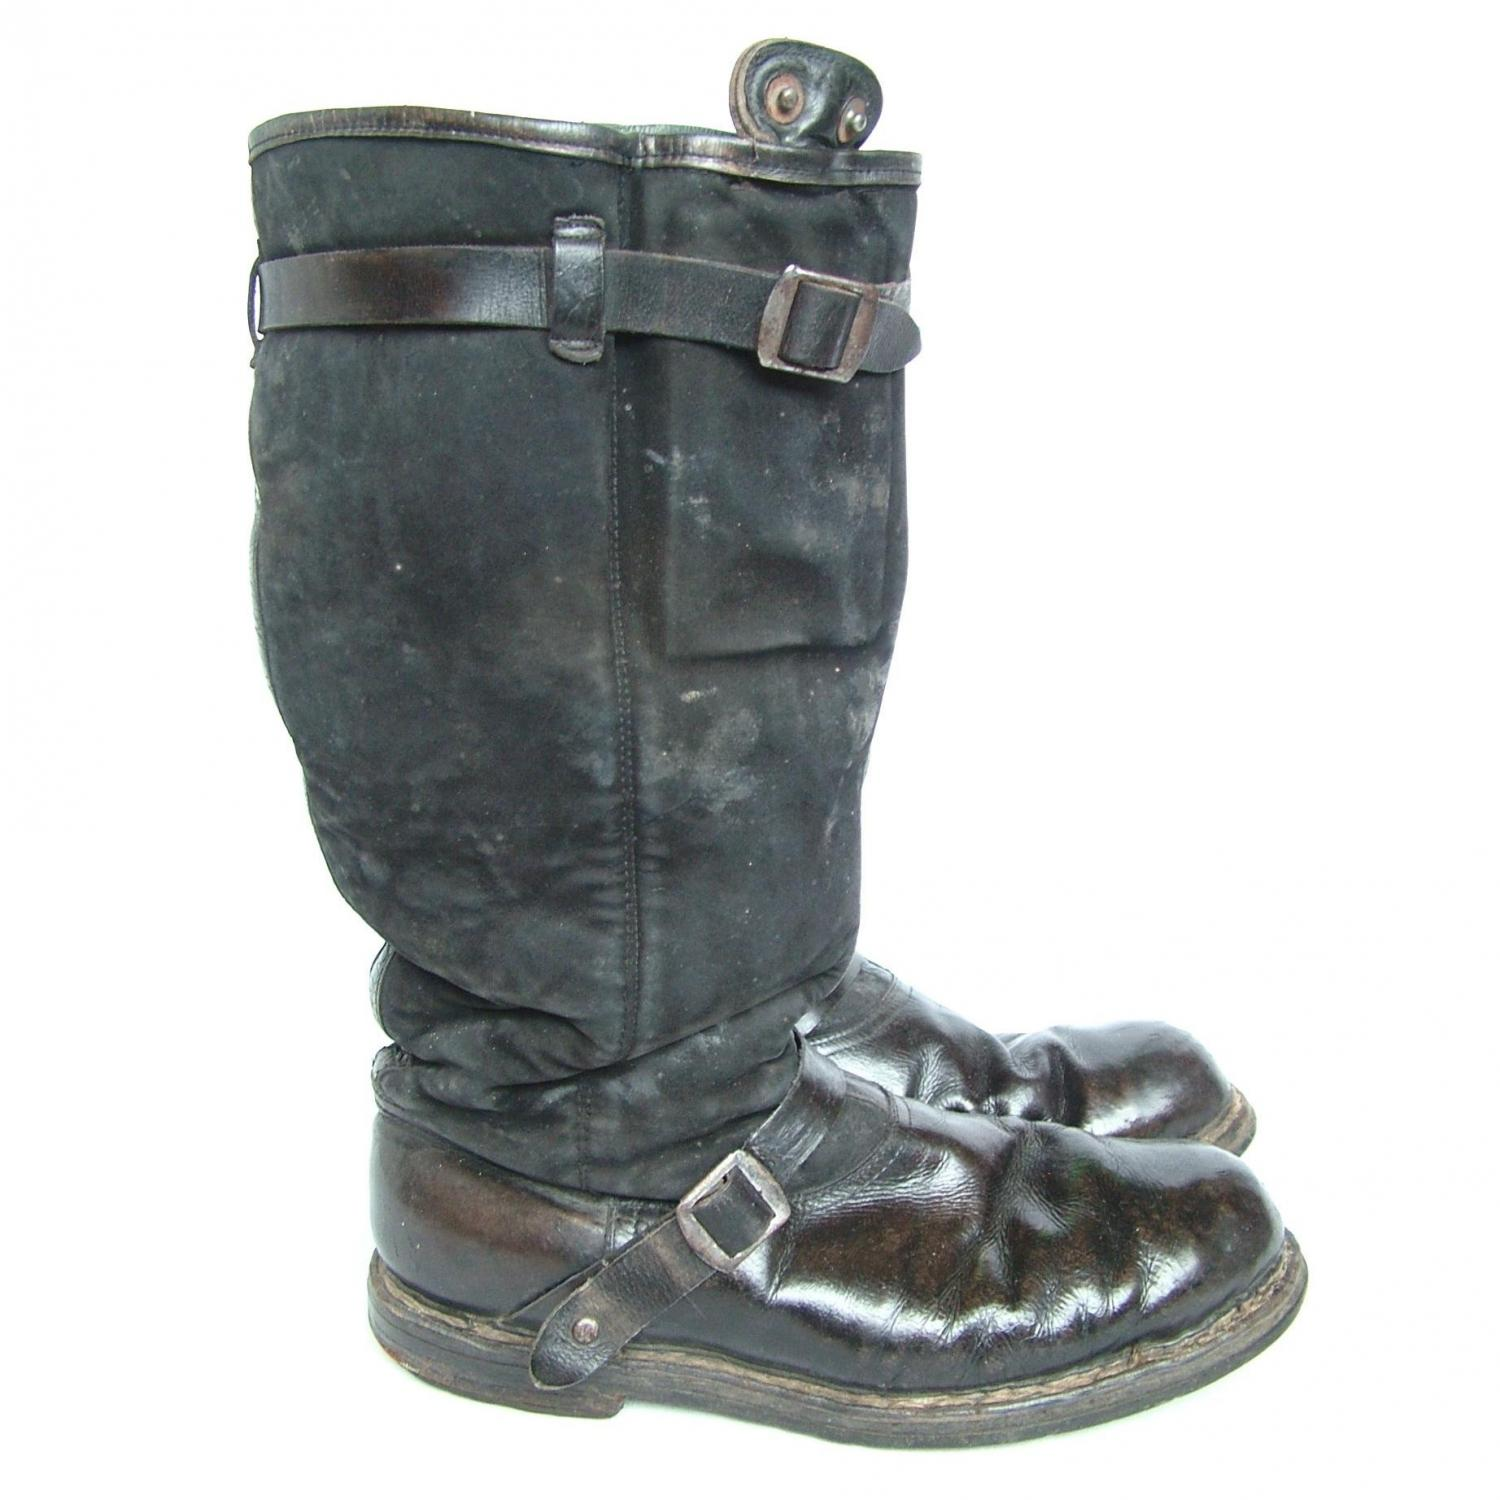 Luftwaffe Electrically Heated Flying Boots